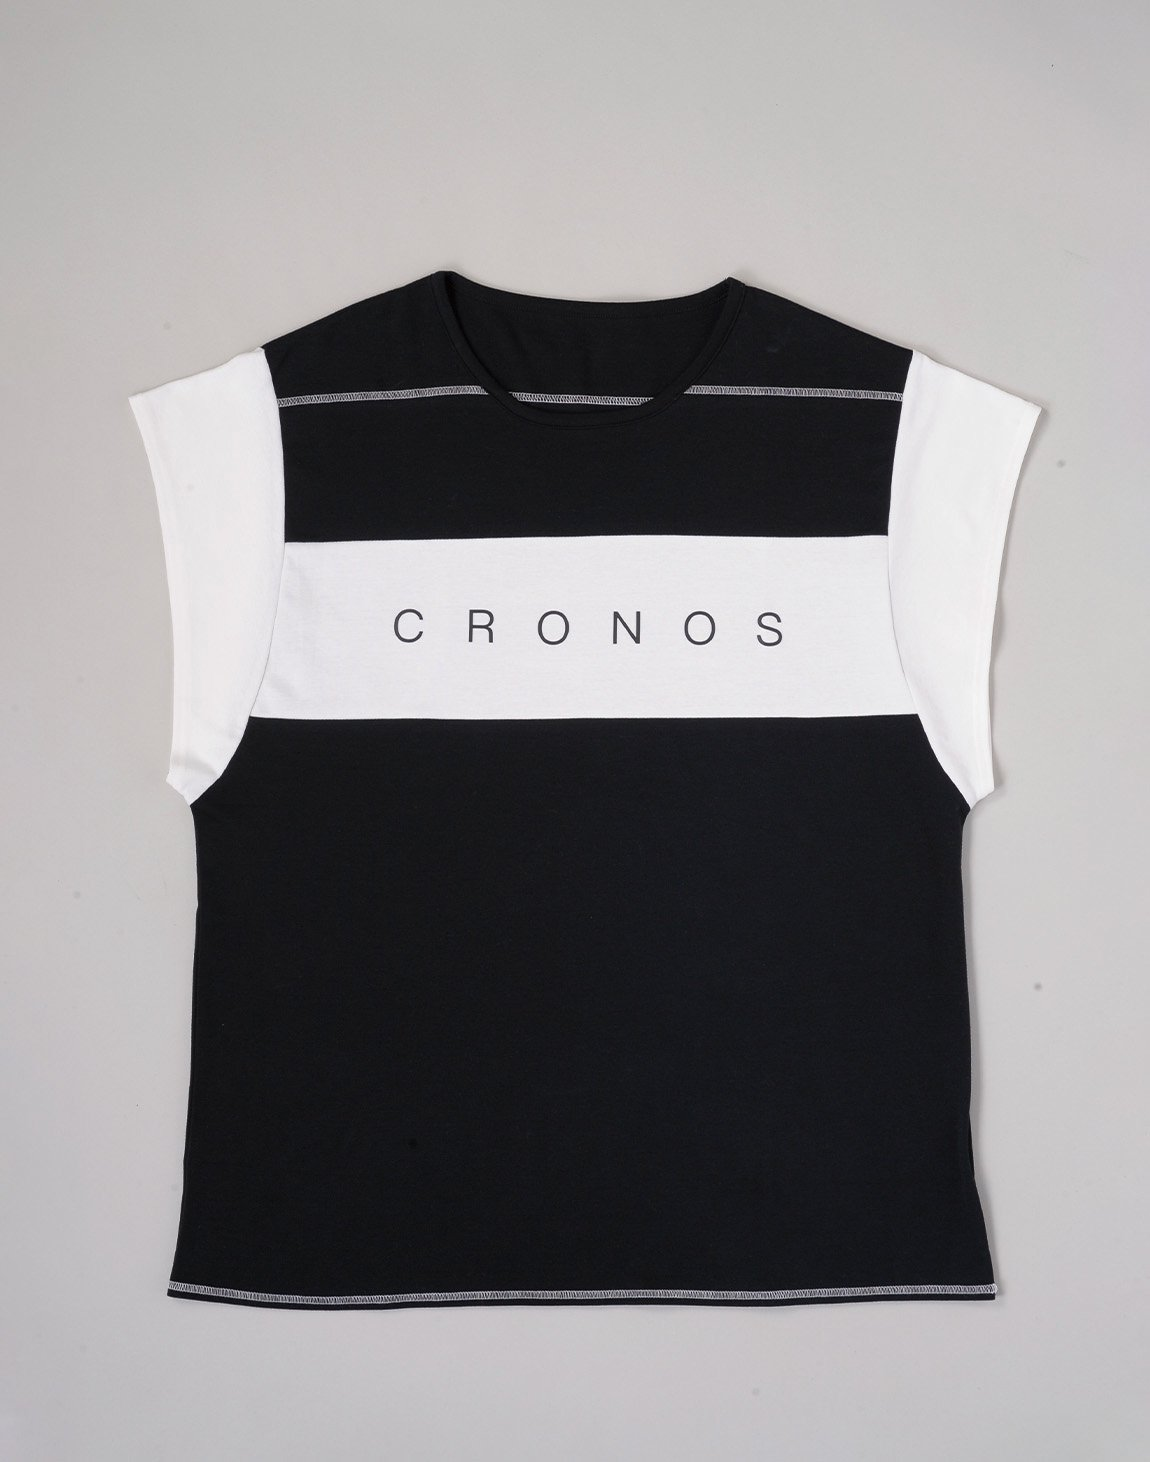 <img class='new_mark_img1' src='https://img.shop-pro.jp/img/new/icons55.gif' style='border:none;display:inline;margin:0px;padding:0px;width:auto;' />CRONOS BANNER LOGO TOPS【BLACK】